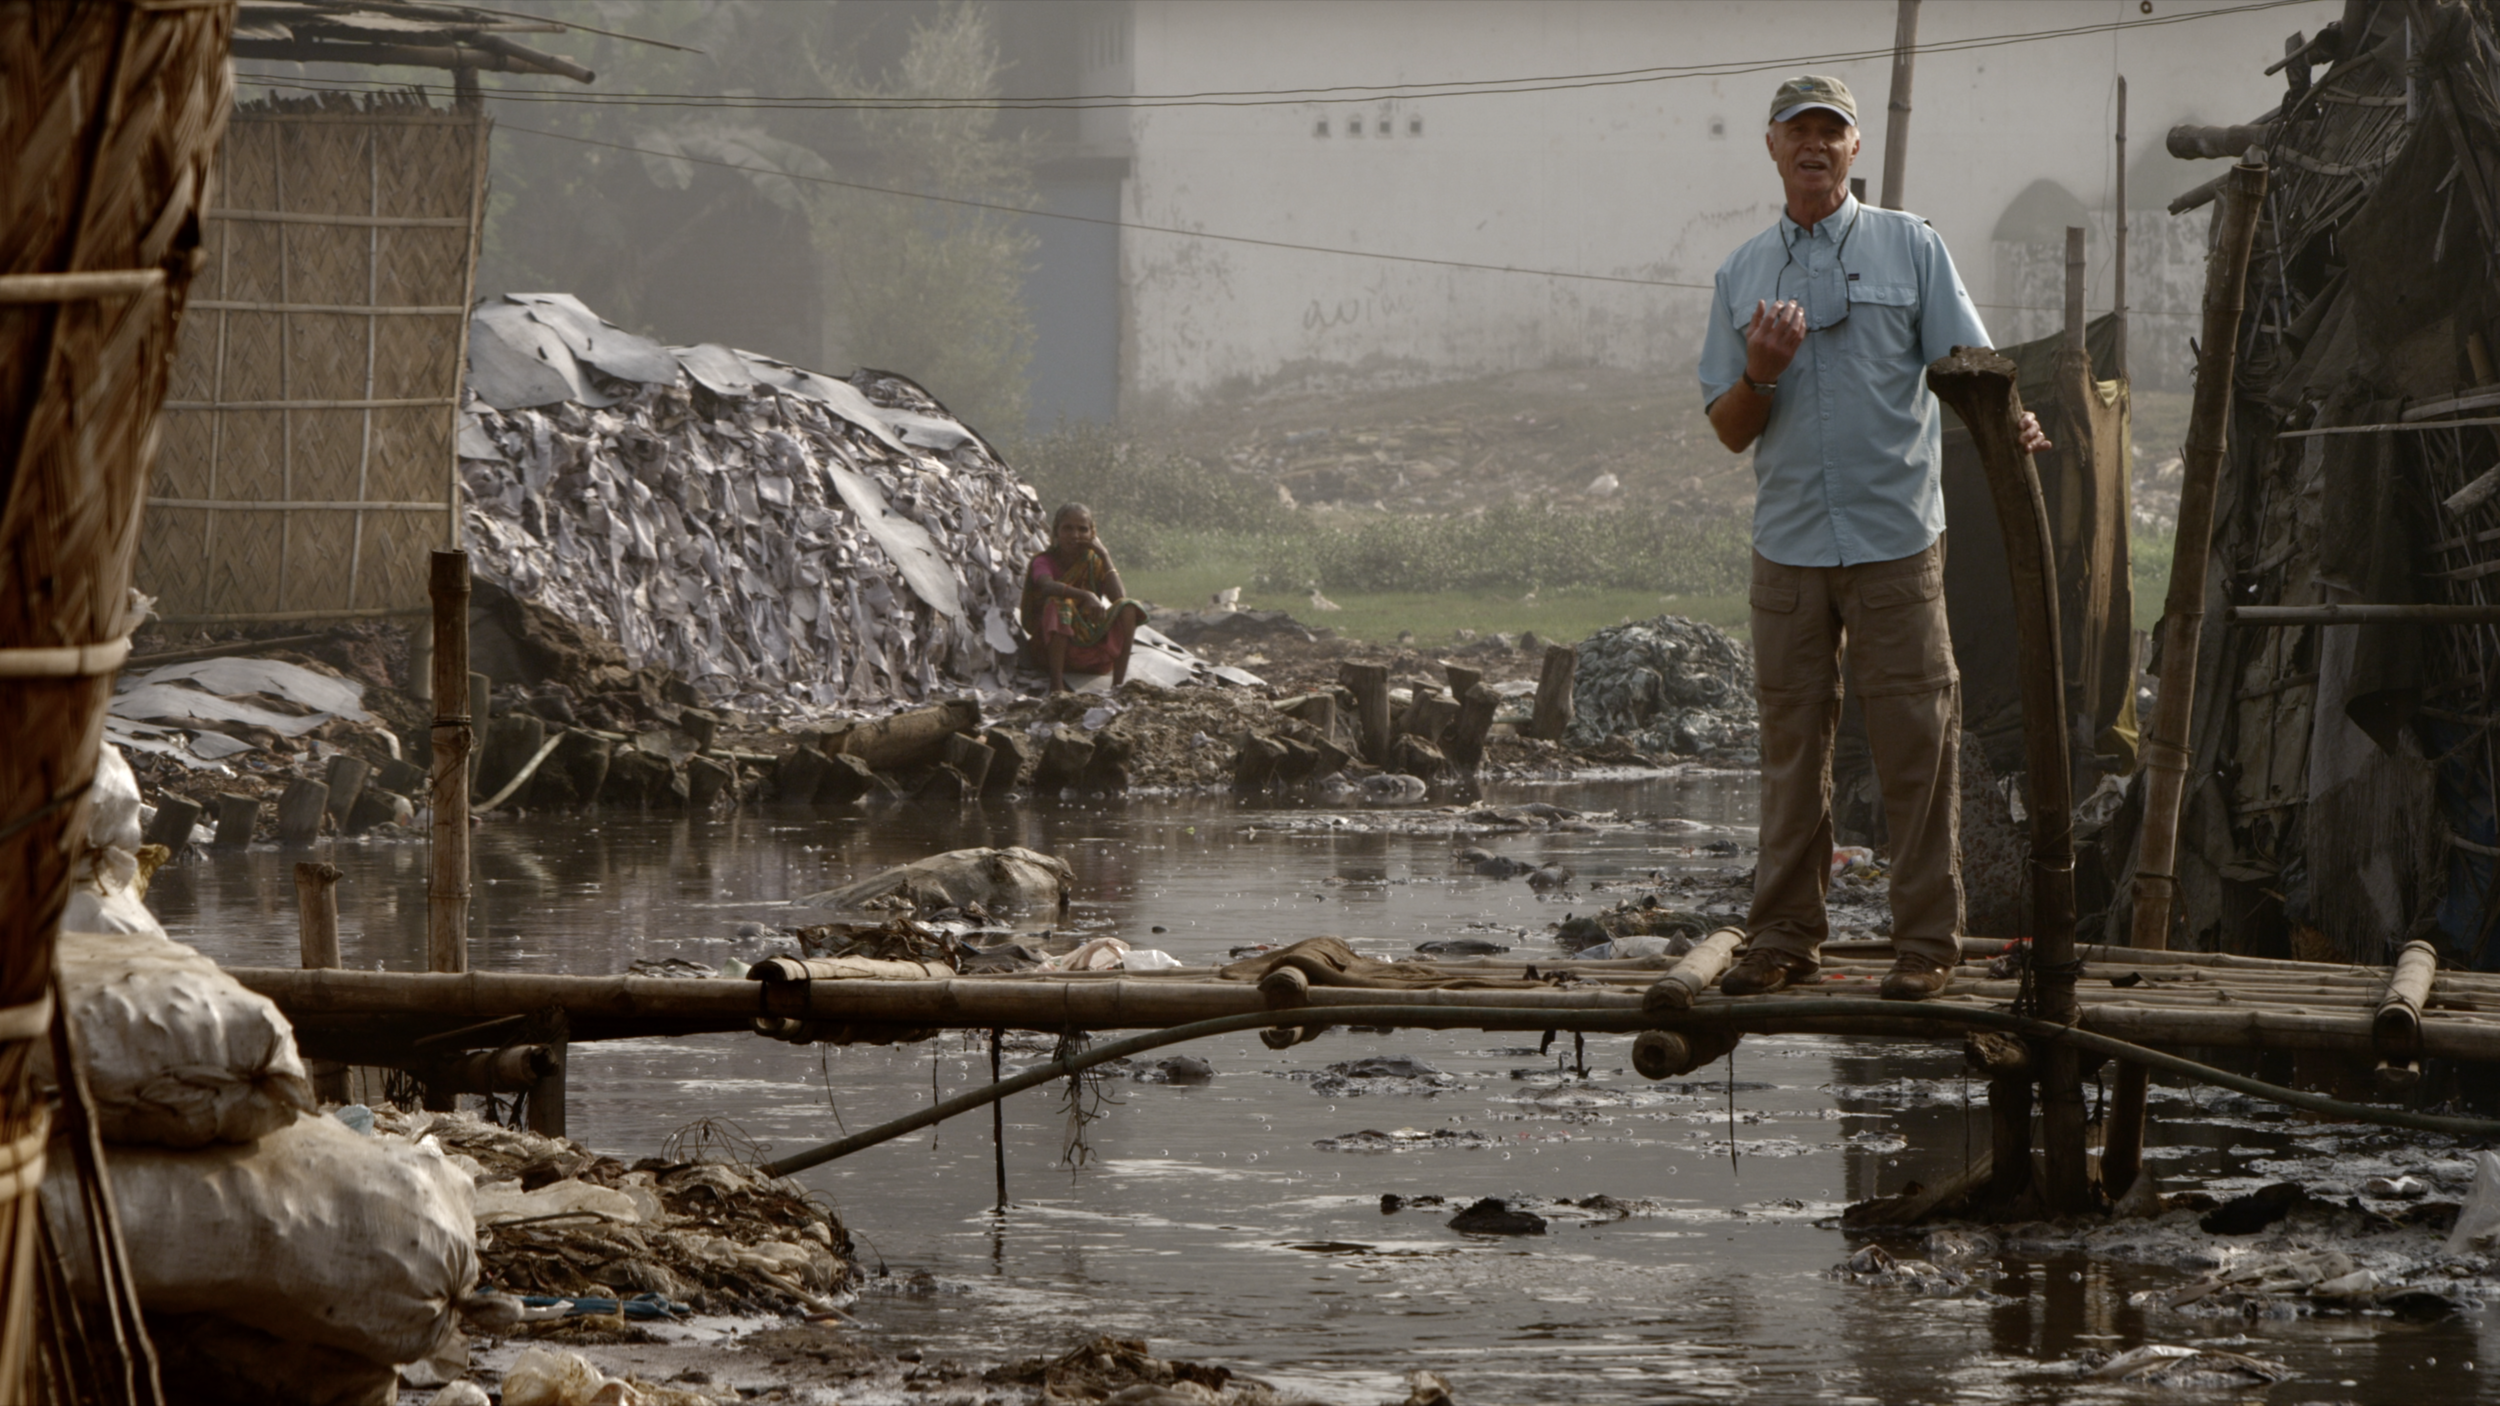 International river conservationist Mark Angelo stands above a river heavily polluted by a clothing manufacturer.